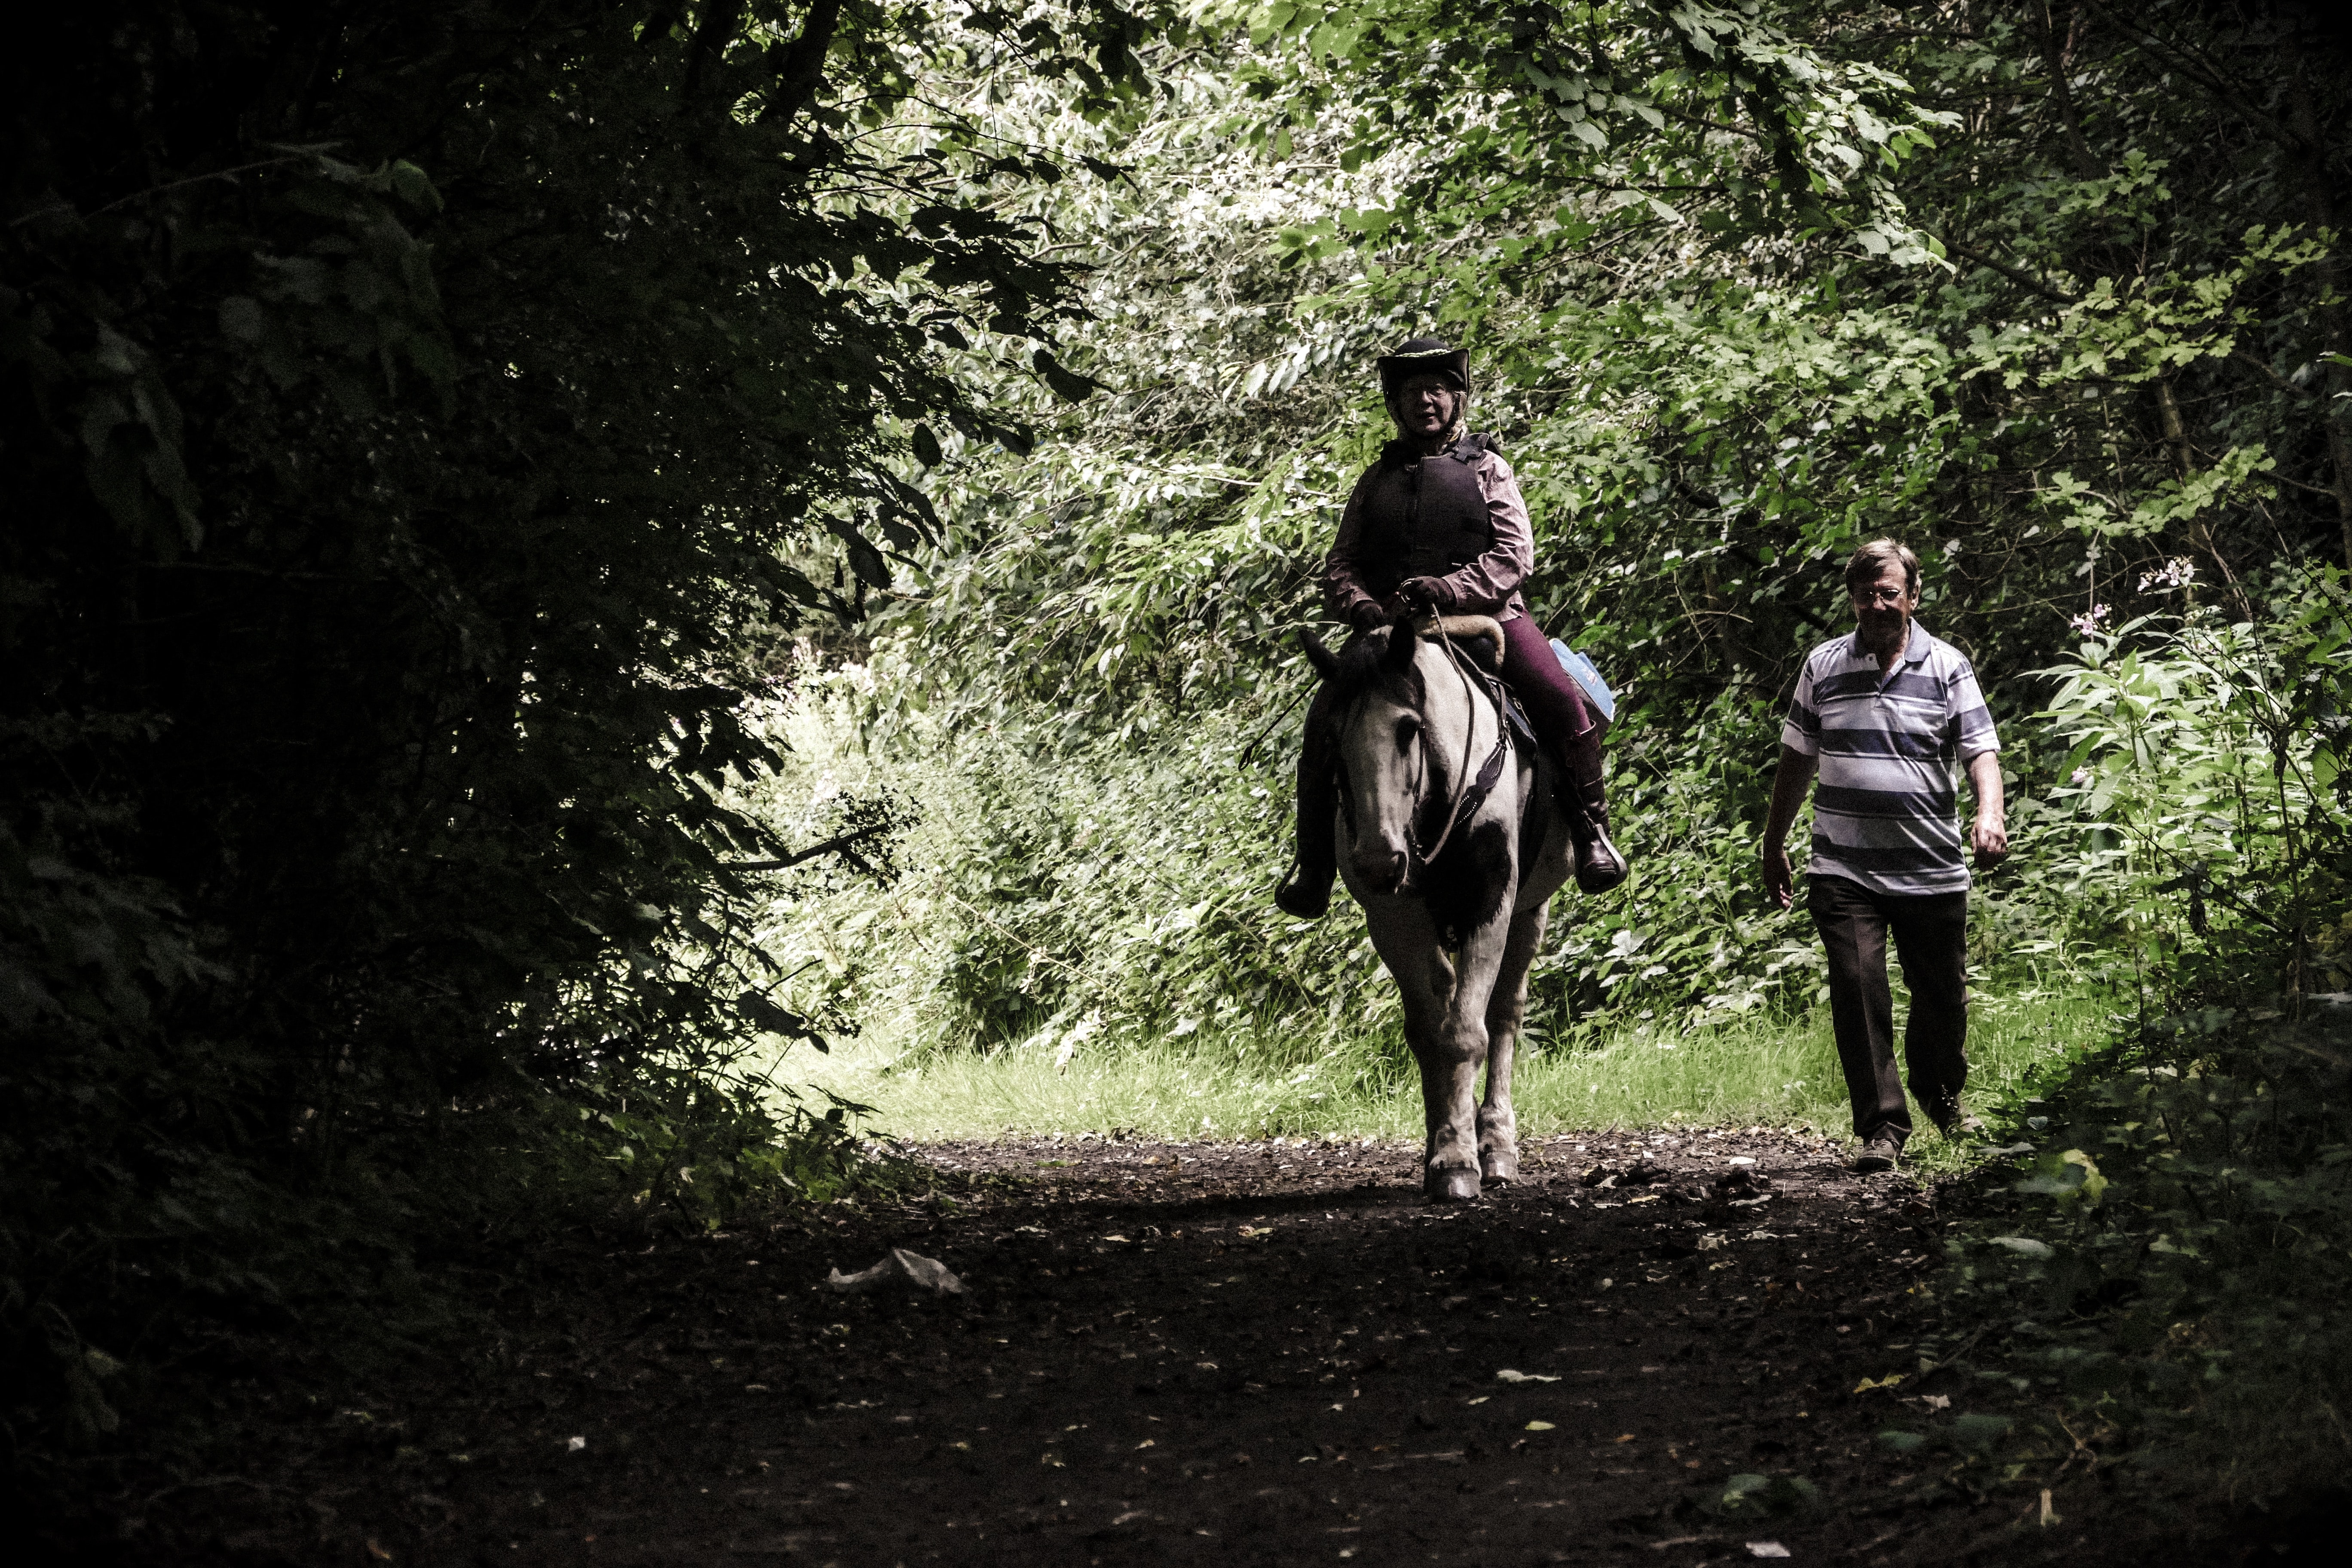 person riding on horse beside man walking on forest